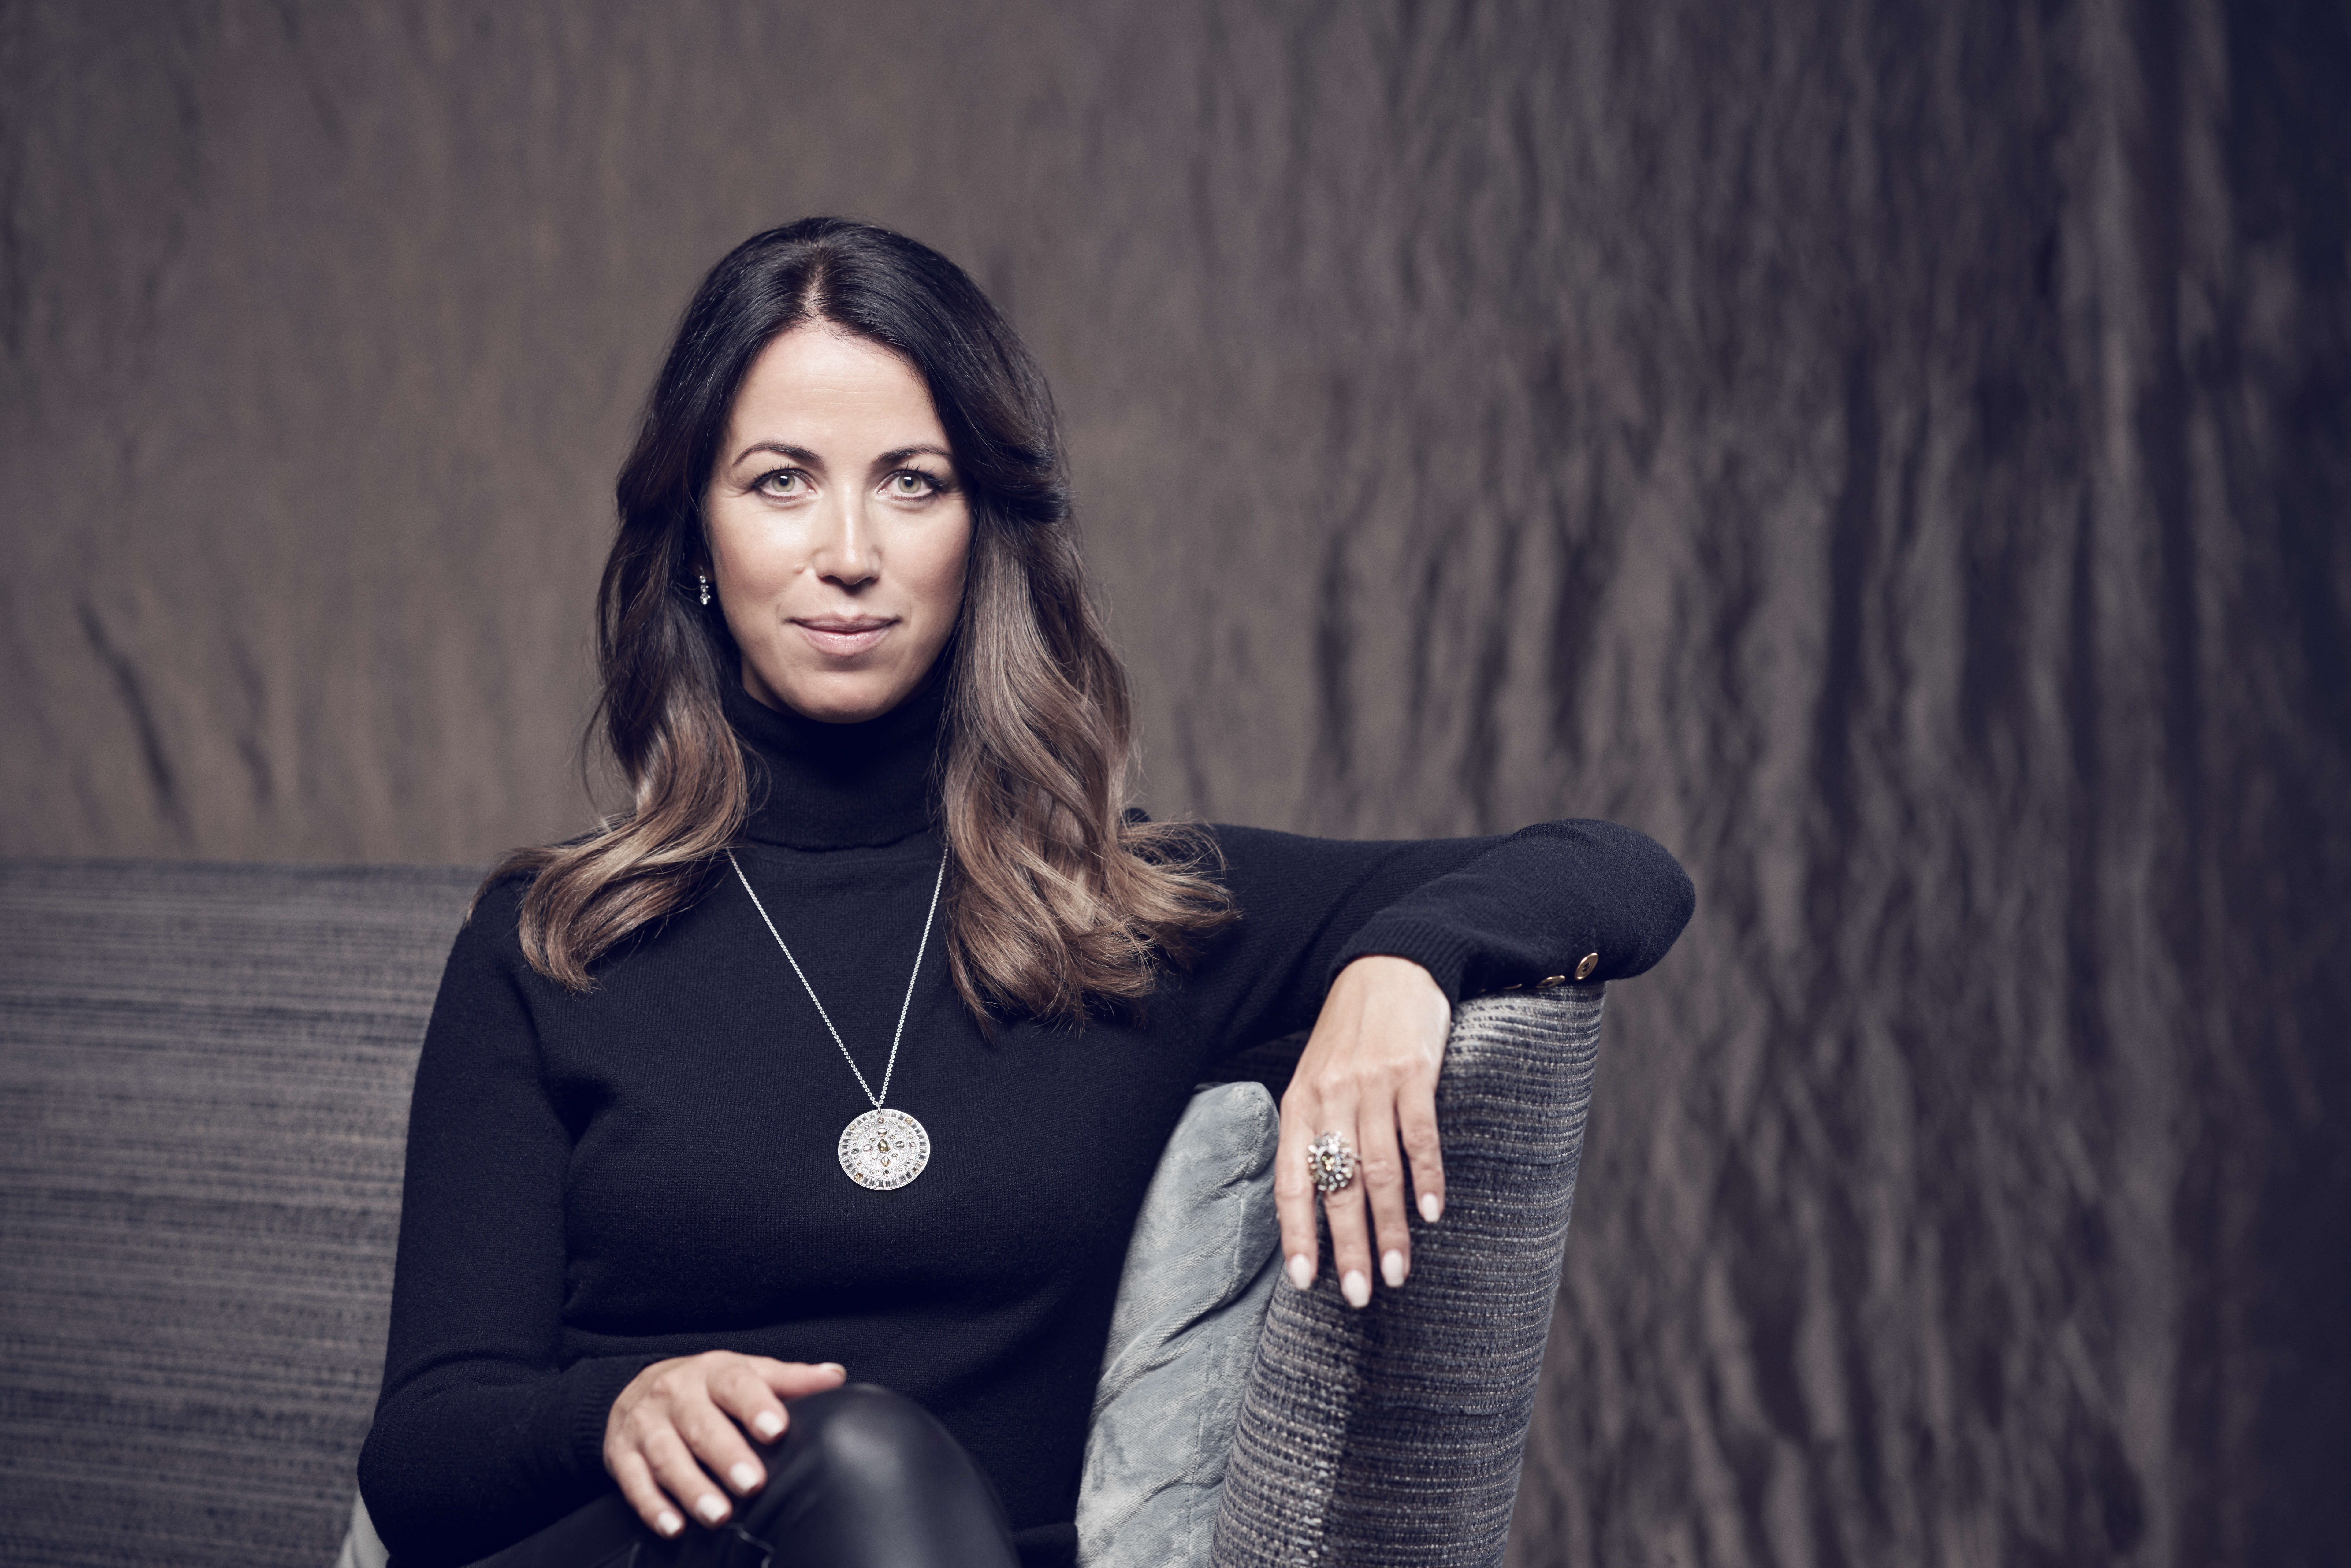 Céline Assimon, currently chief executive officer of De Beers Jewellers, will take on the additional role of CEO at De Beers Forevermark.